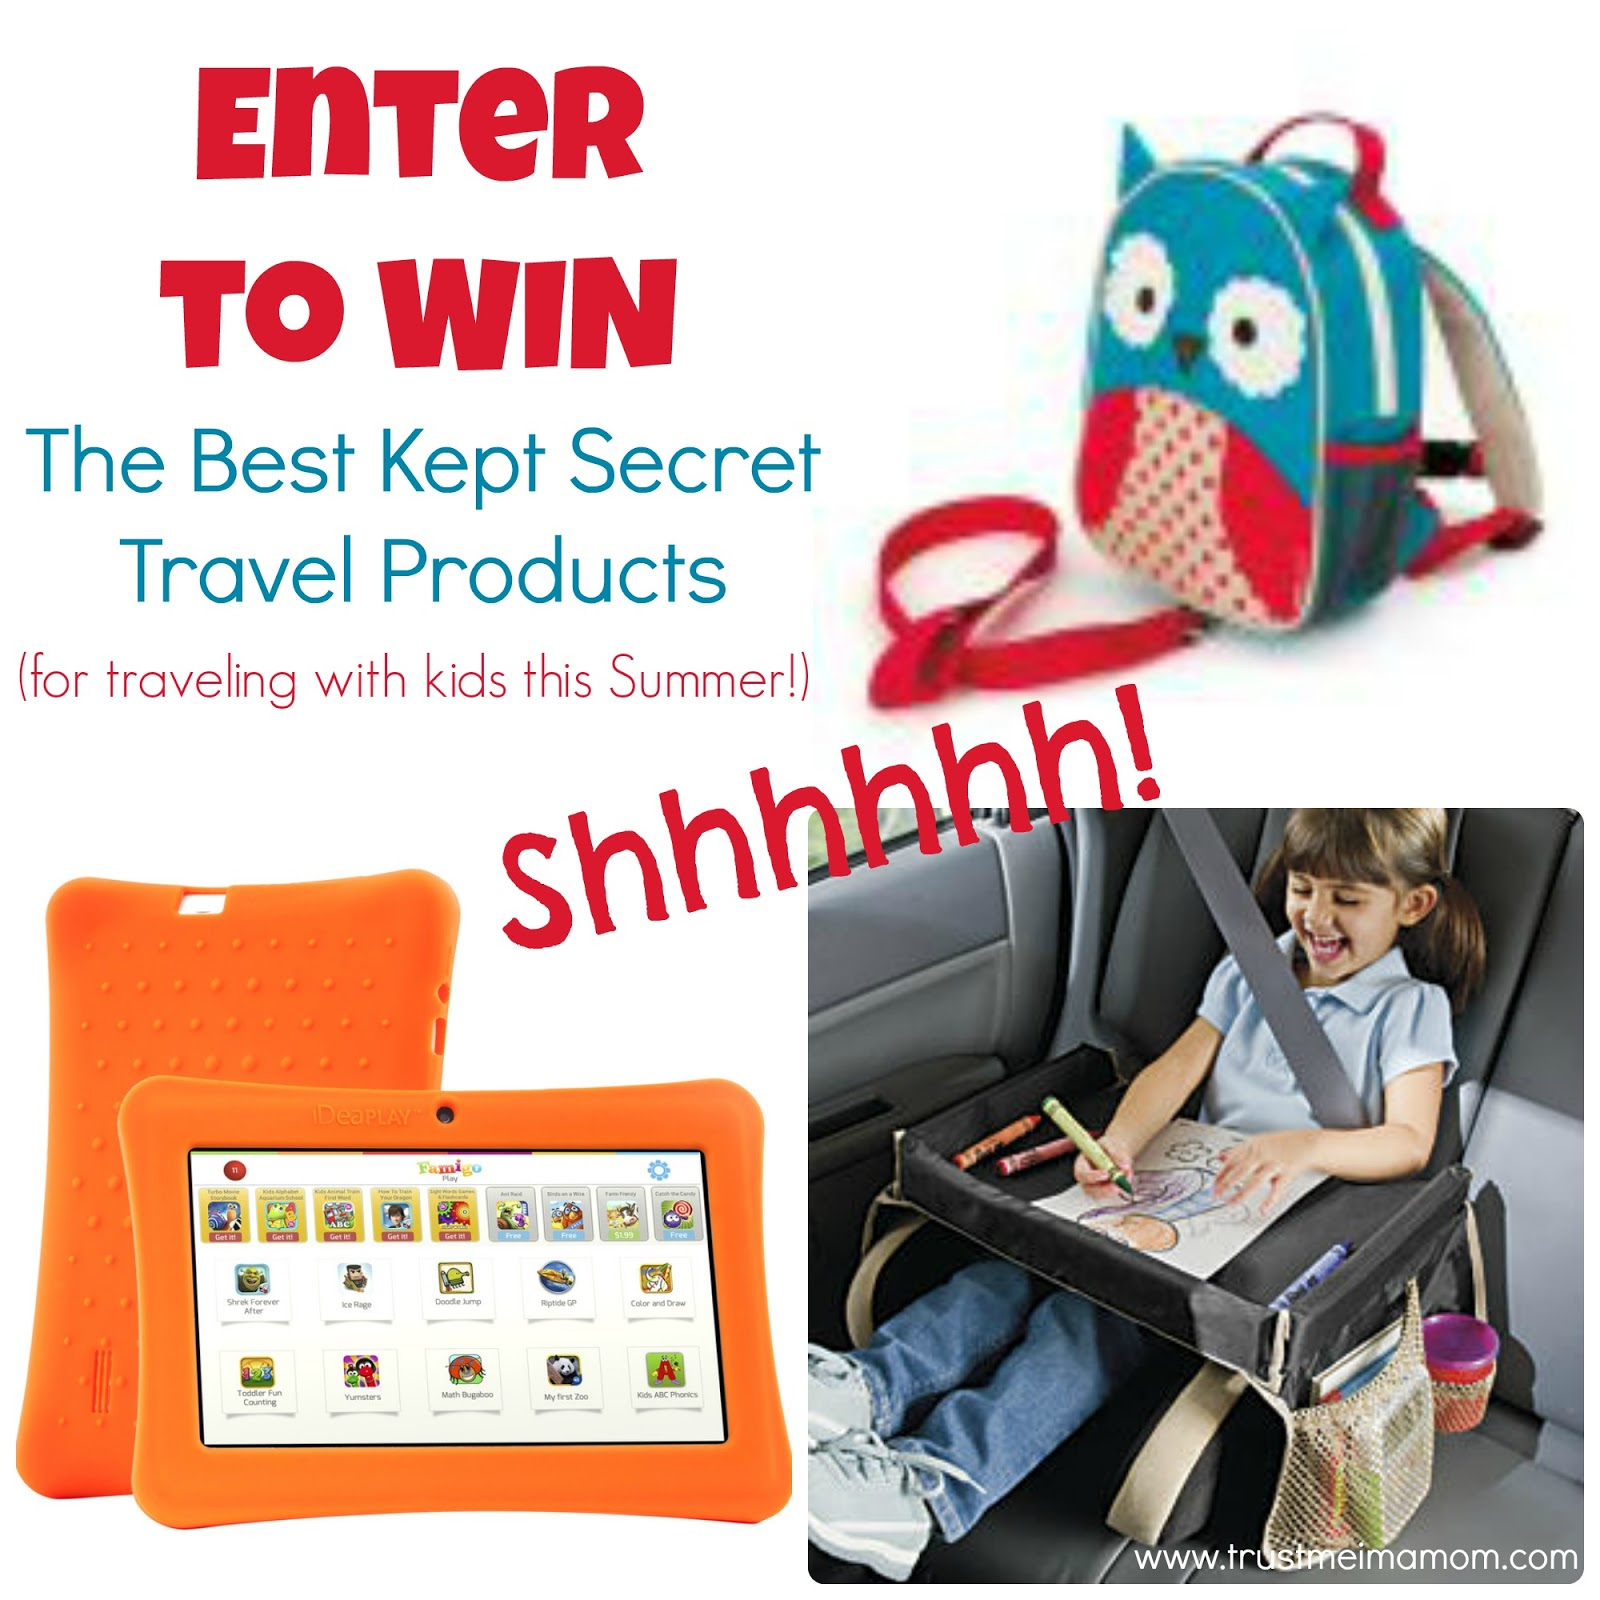 http://www.trustmeimamom.com/2014/05/best-kept-secret-products-kids-summer-travel.html